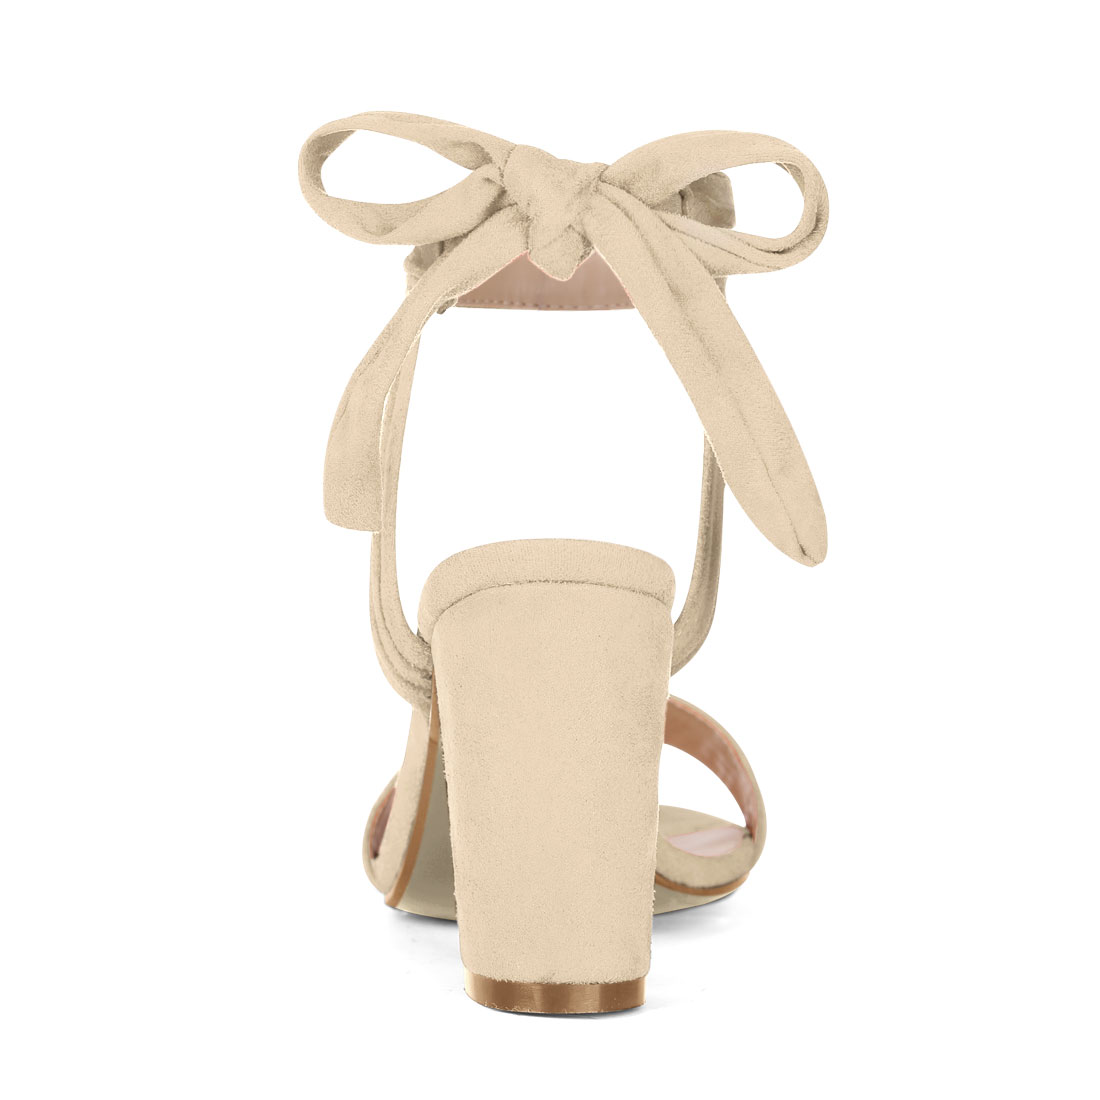 Unique Bargains Women's Ankle Tie Open Toe Block Heel Sandals Beige (Size 9.5) - image 4 of 7